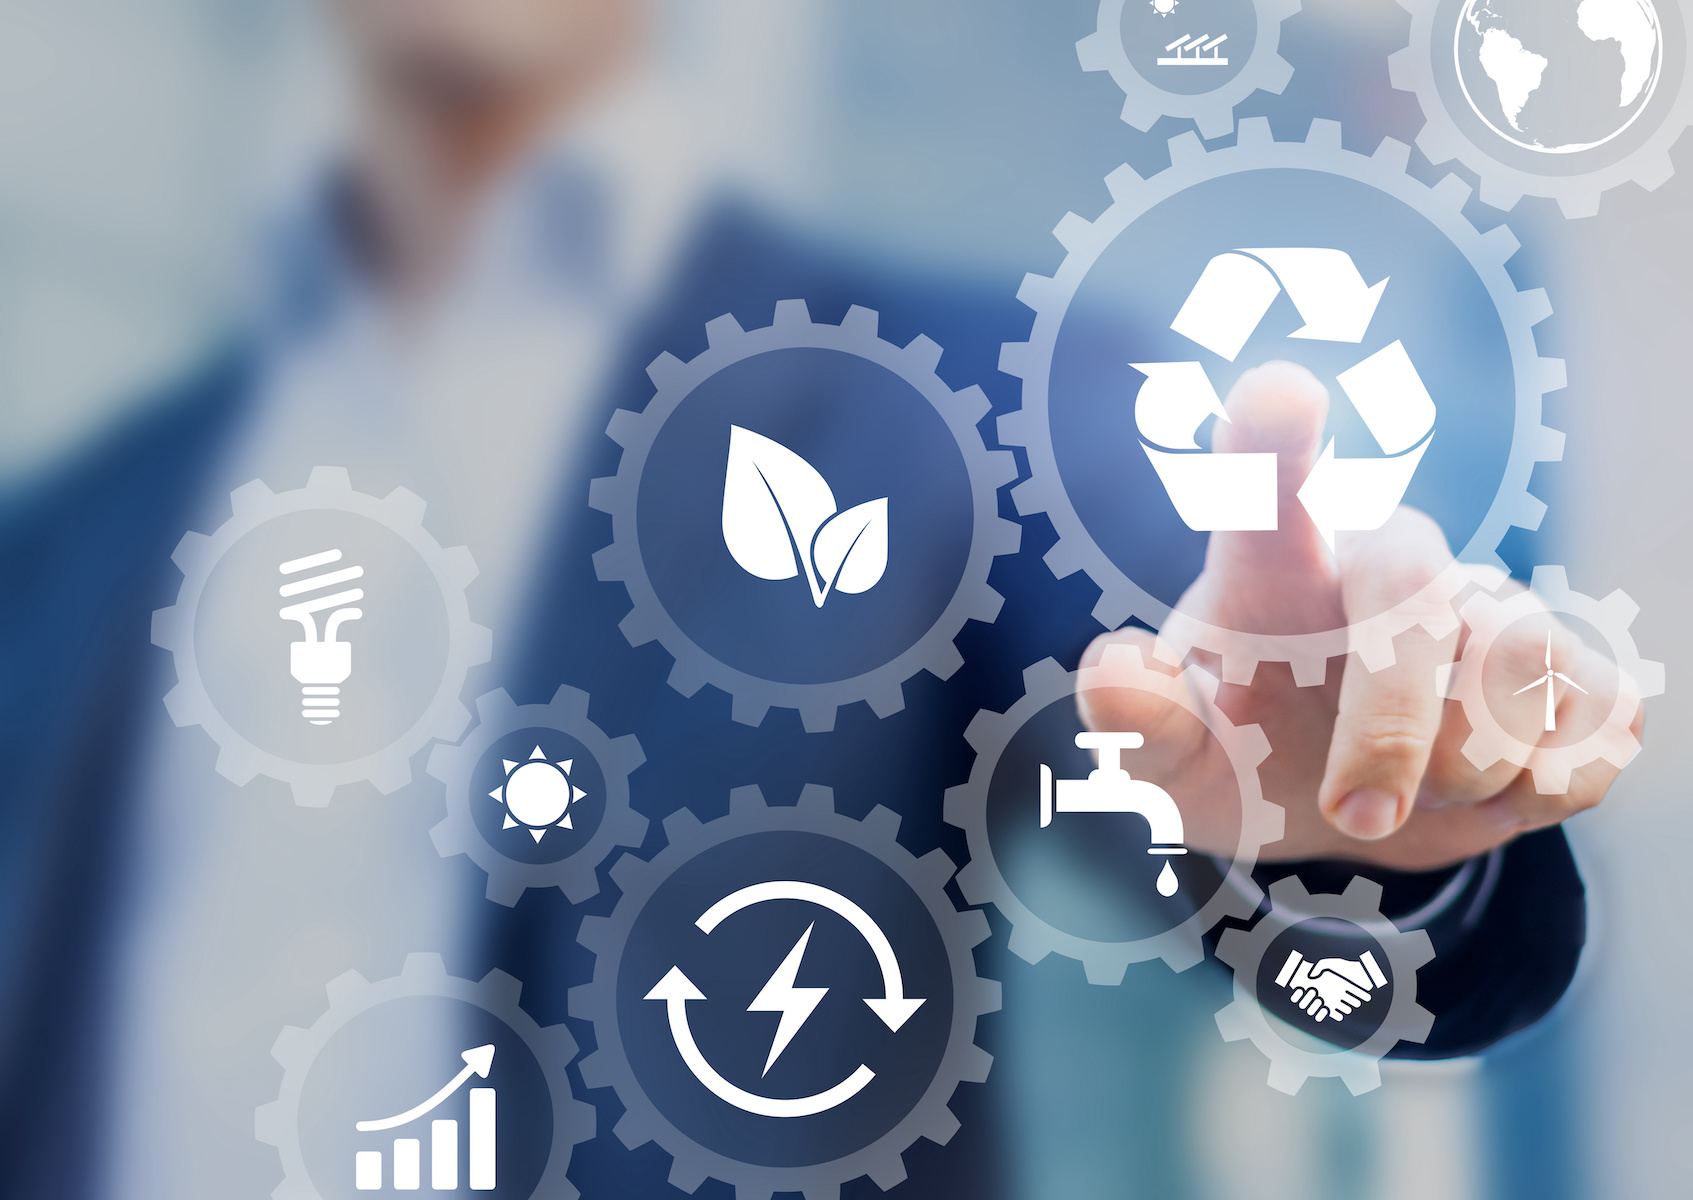 Accurately measuring a true carbon footprint requires companies and networks to openly share data and rethink their procurement processes